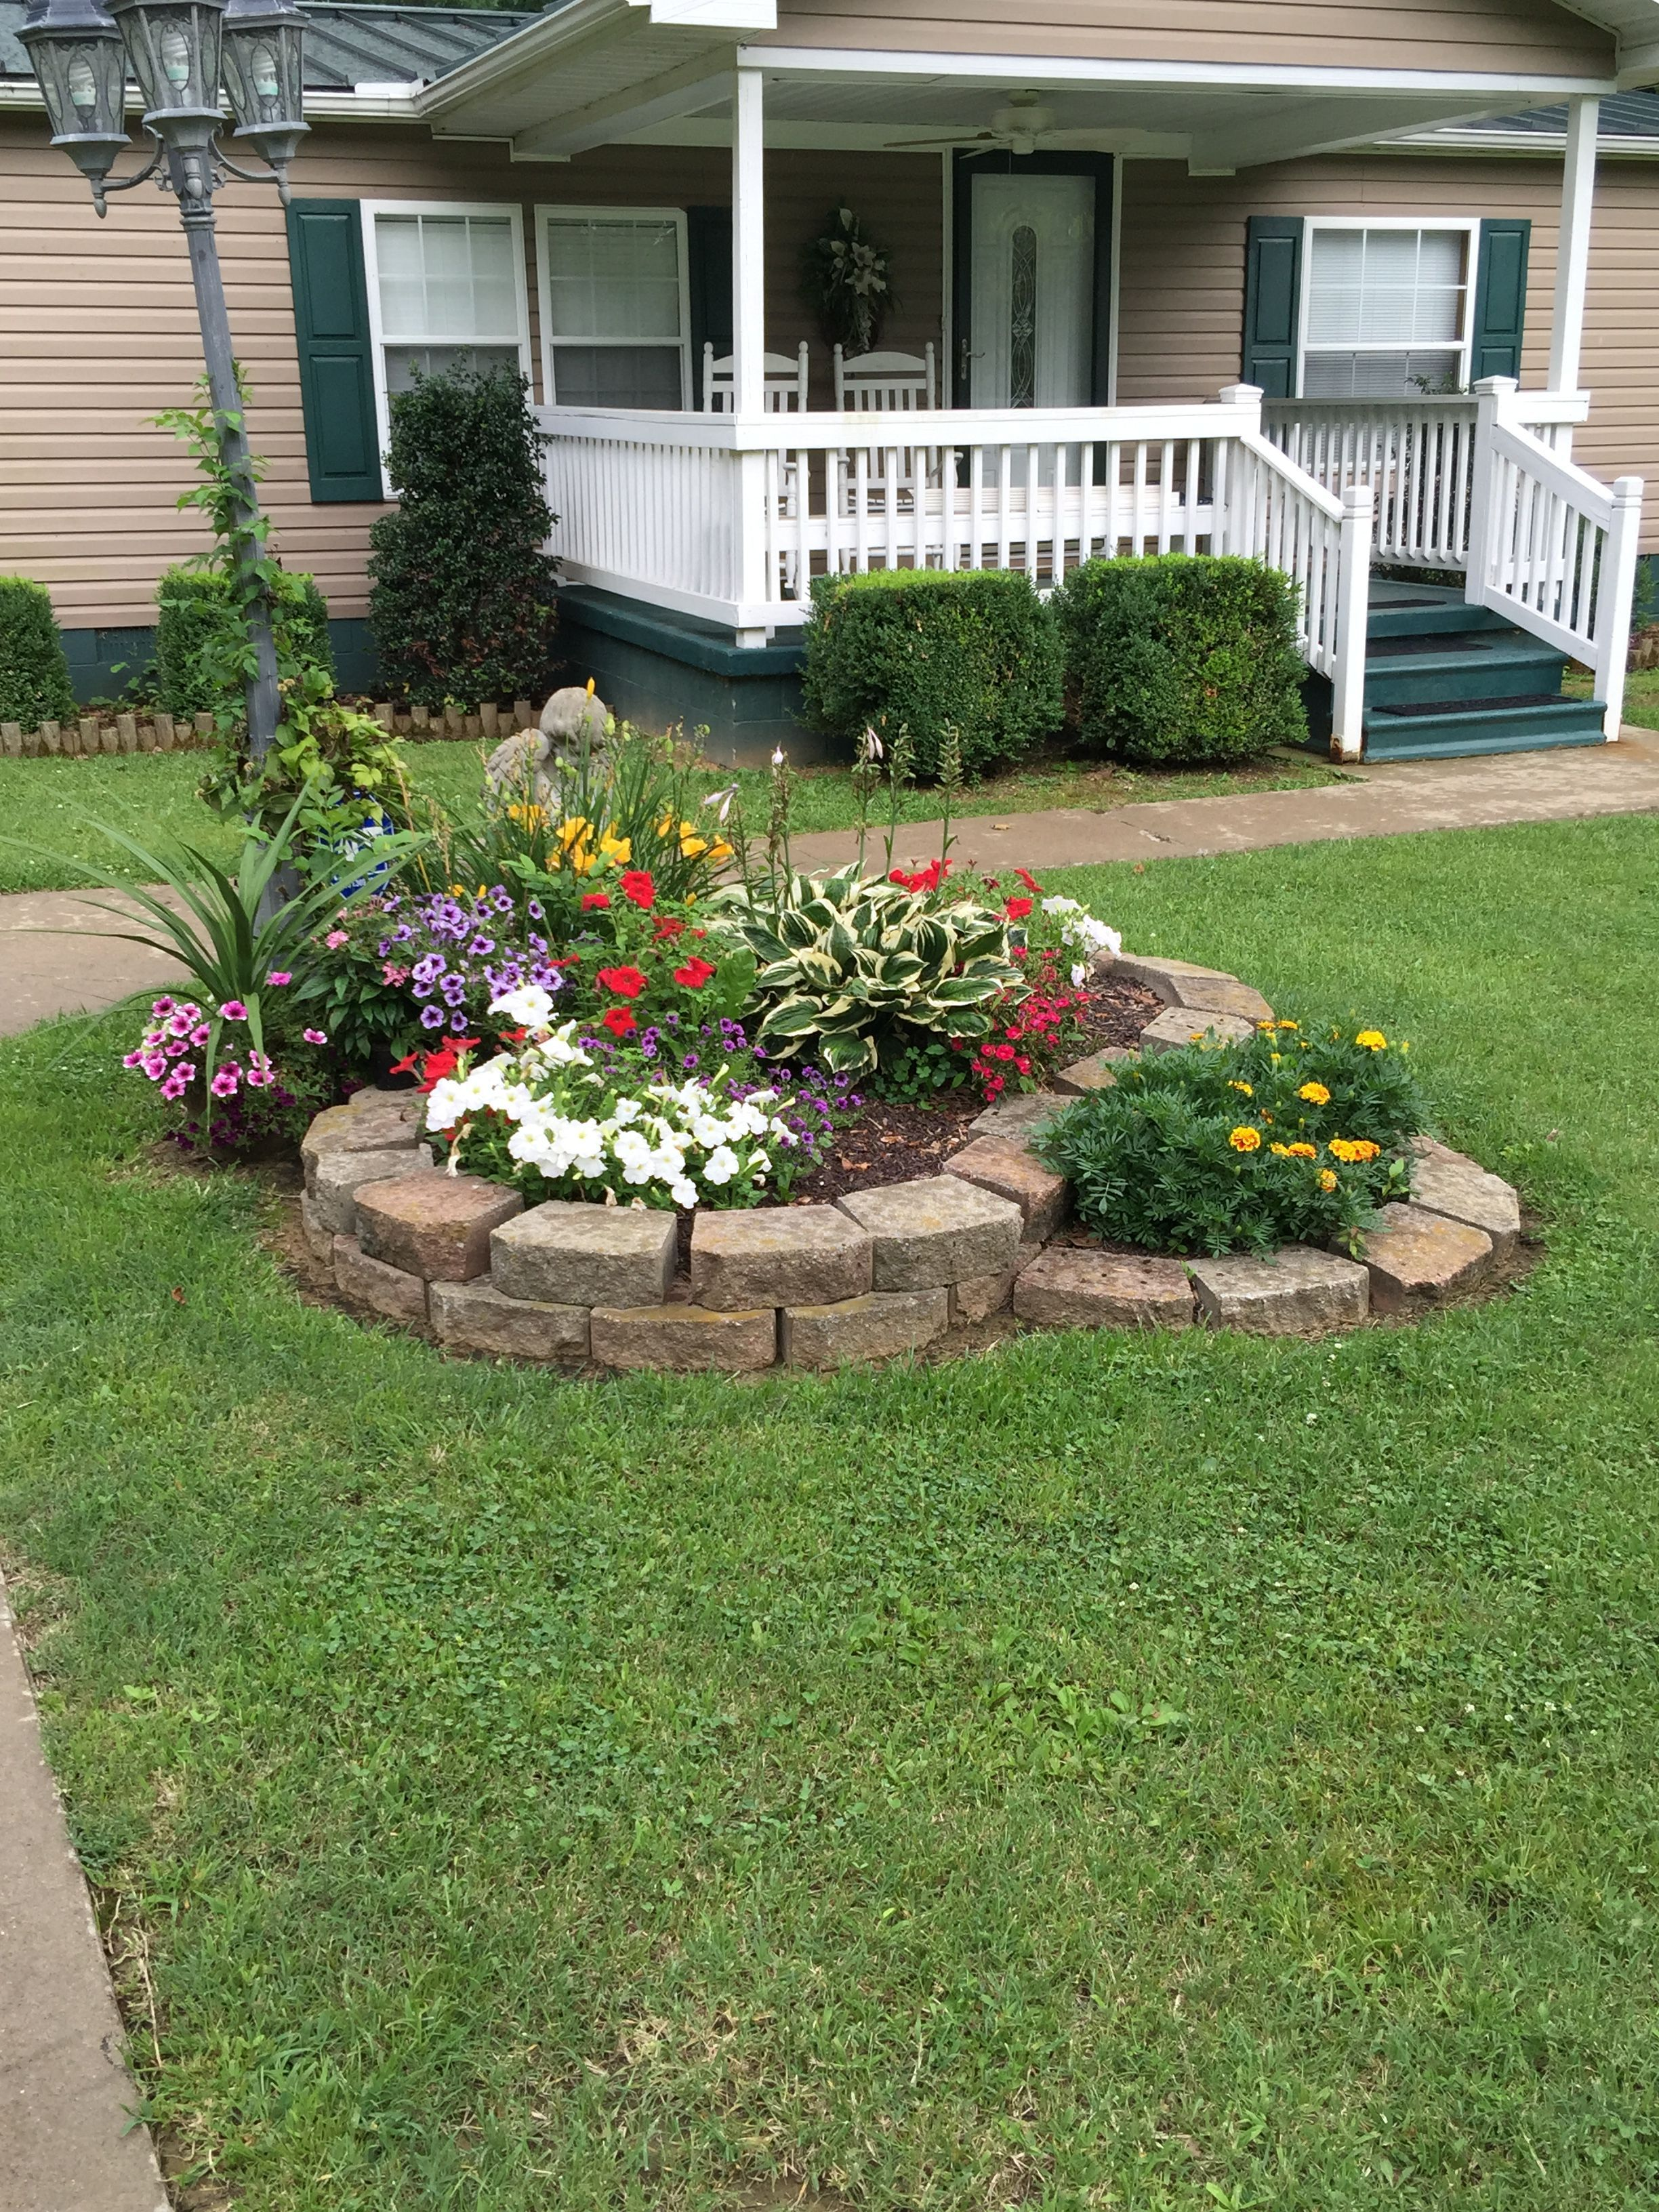 50 New Front Yard Landscaping Design Ideas Front Yard Landscaping Design Beautiful Home Gardens Front Yard Garden